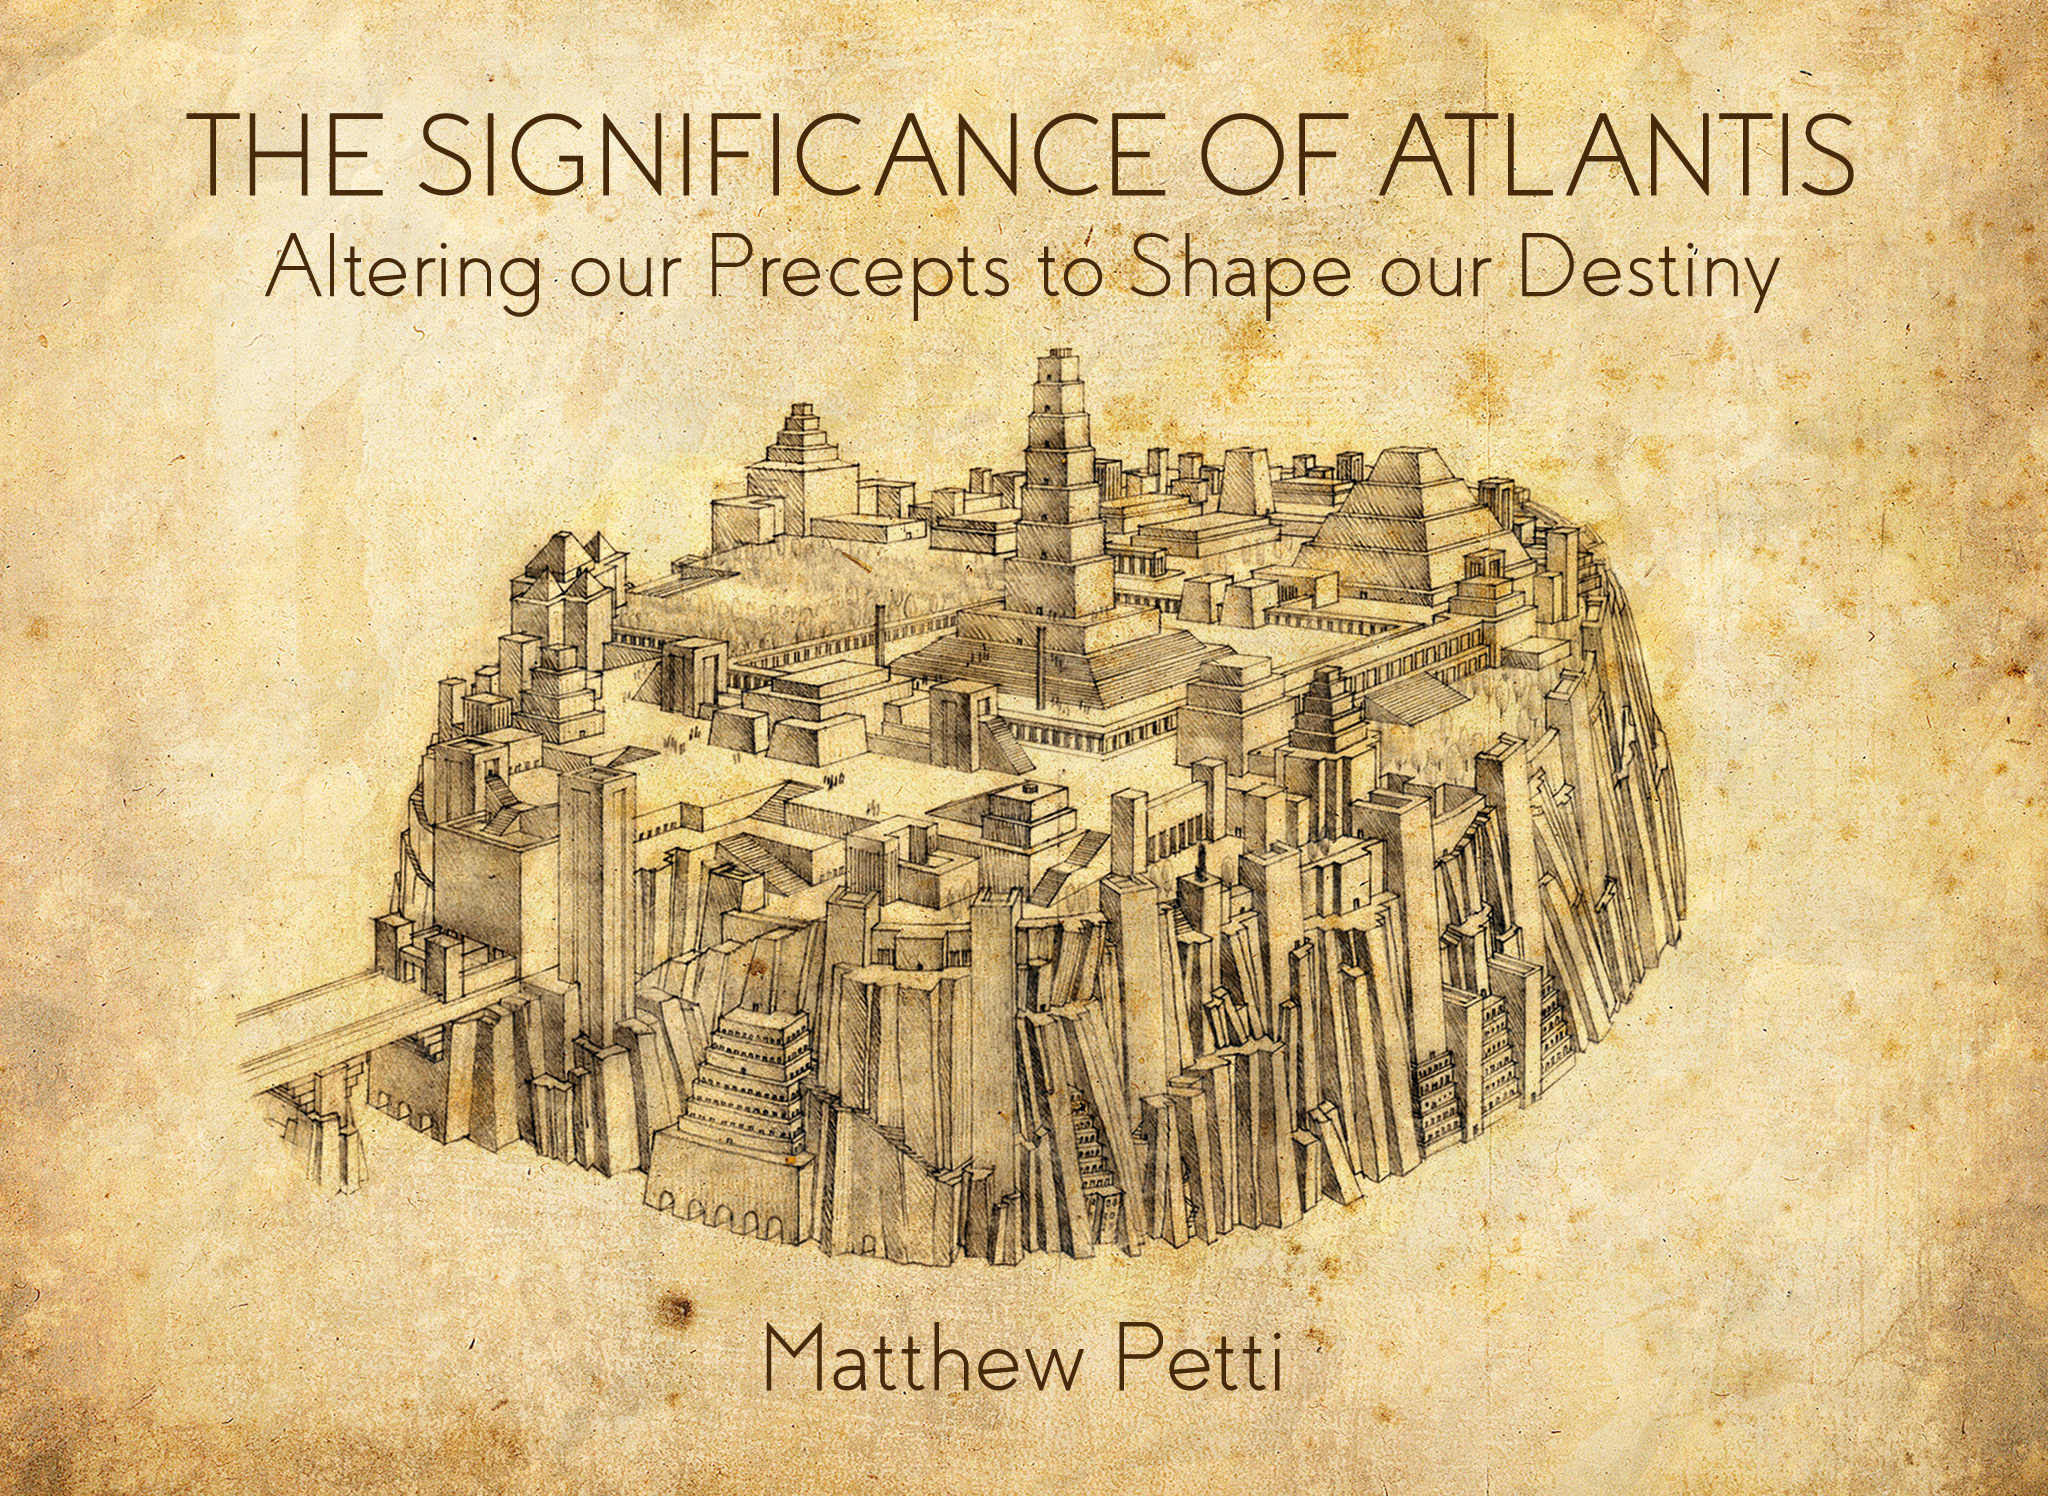 The Significance of Atlantis